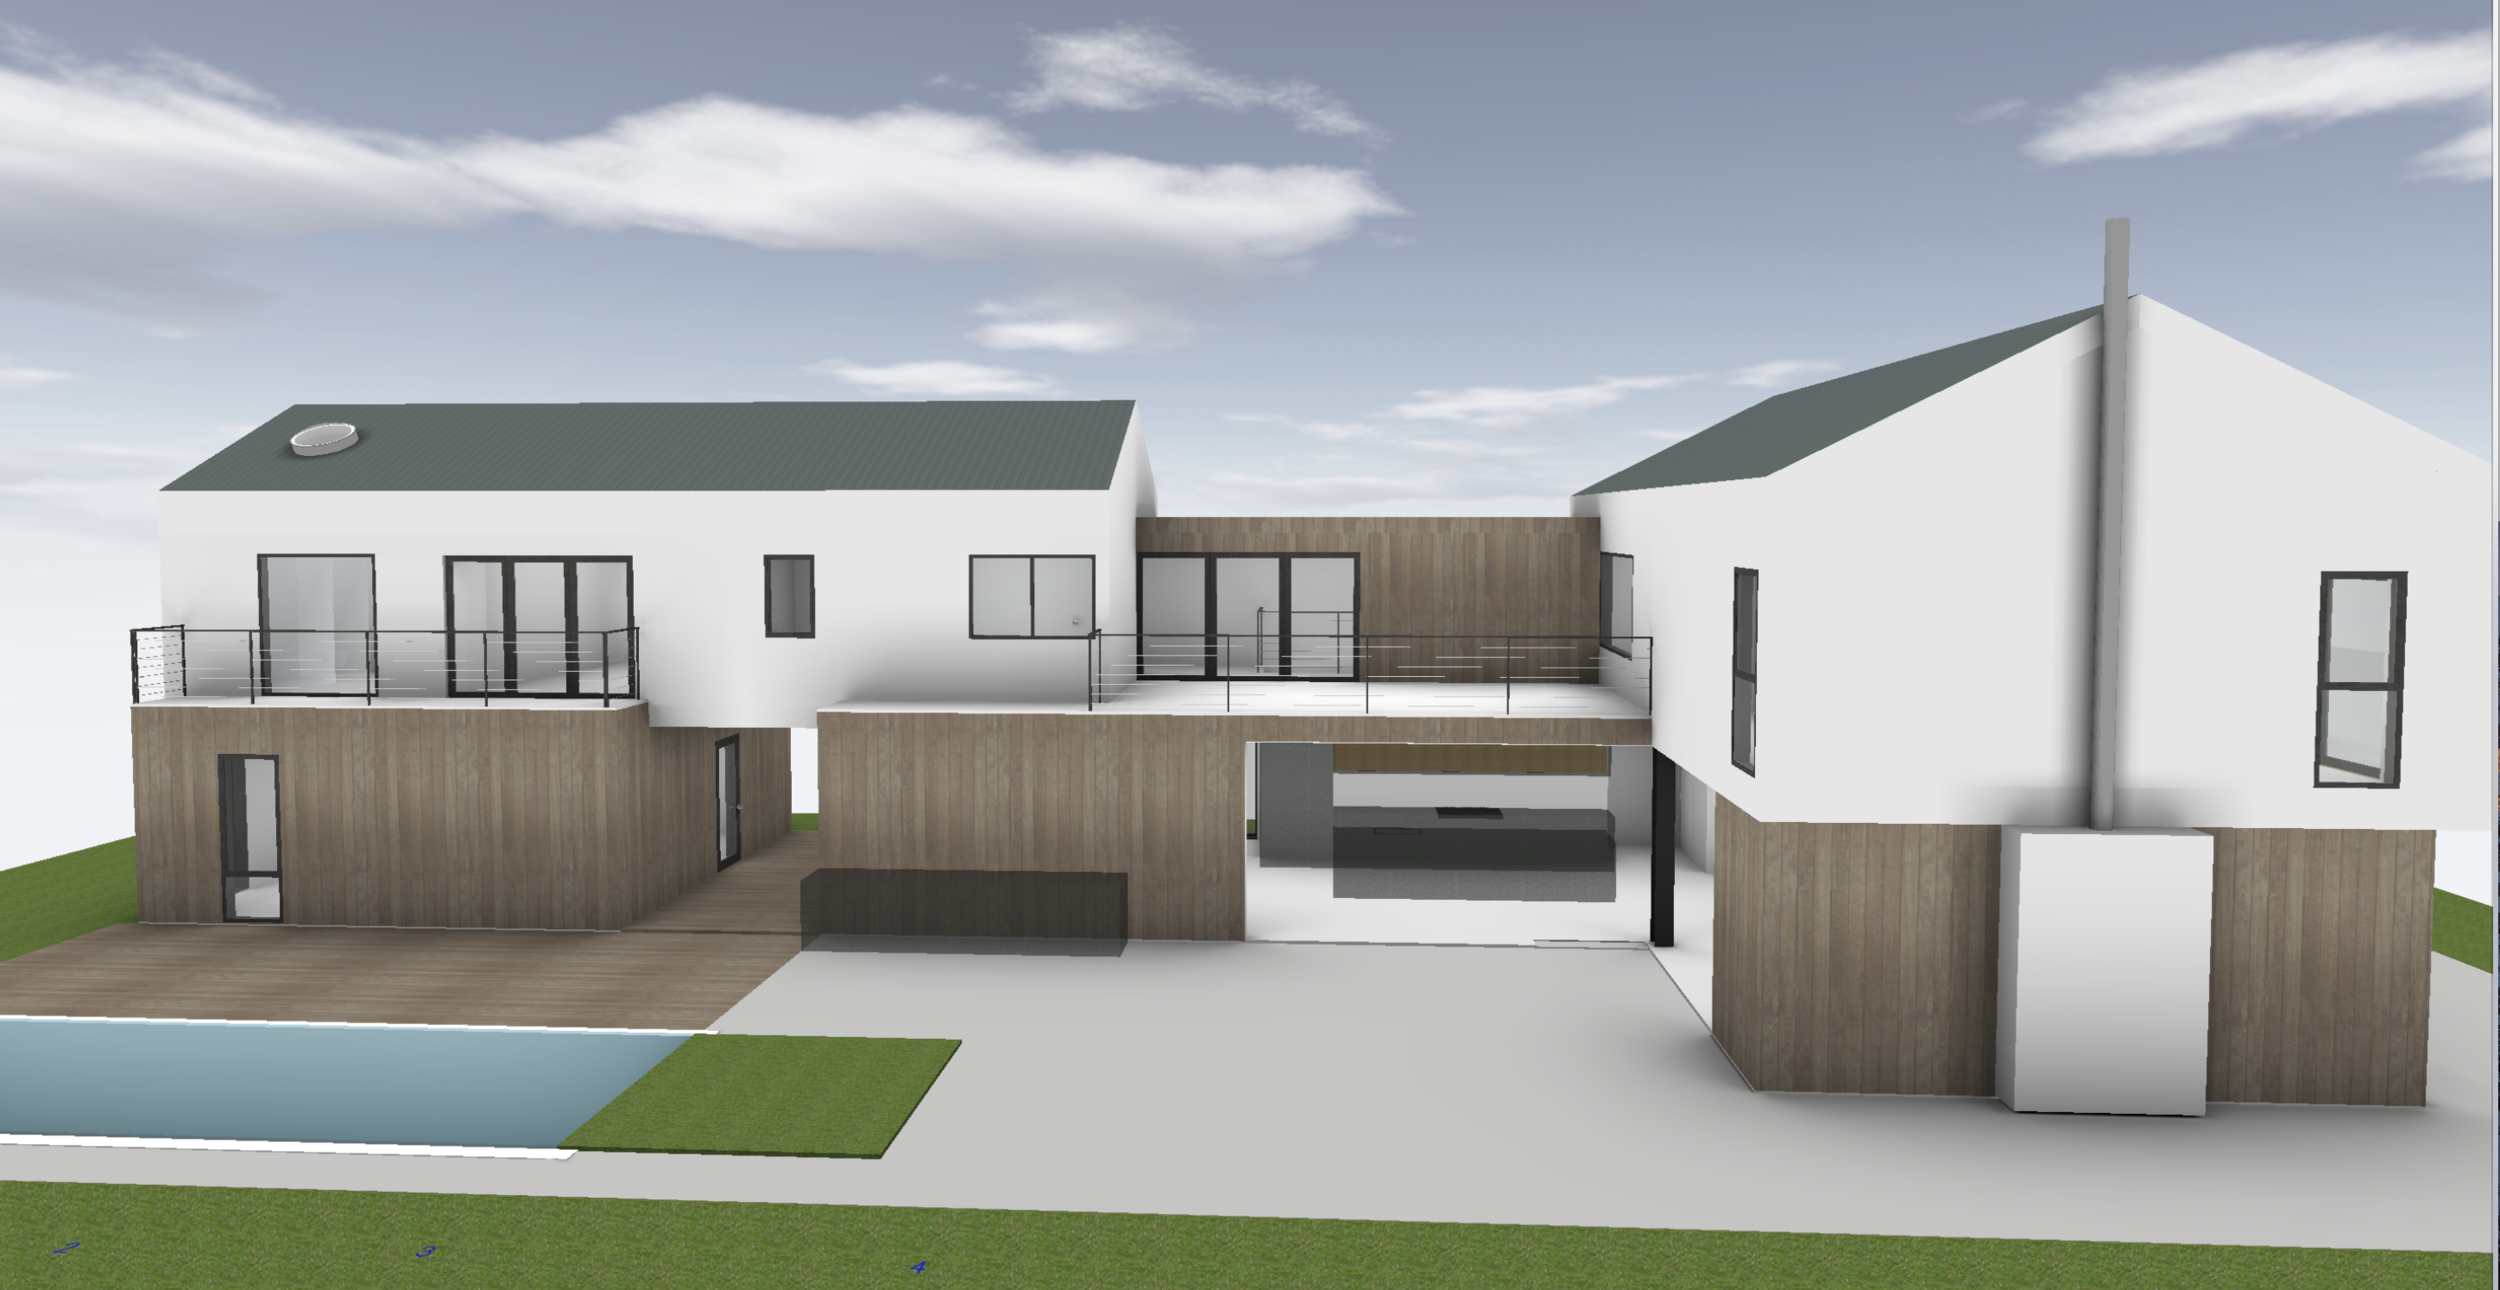 Rendering I: Modern Farmhouse